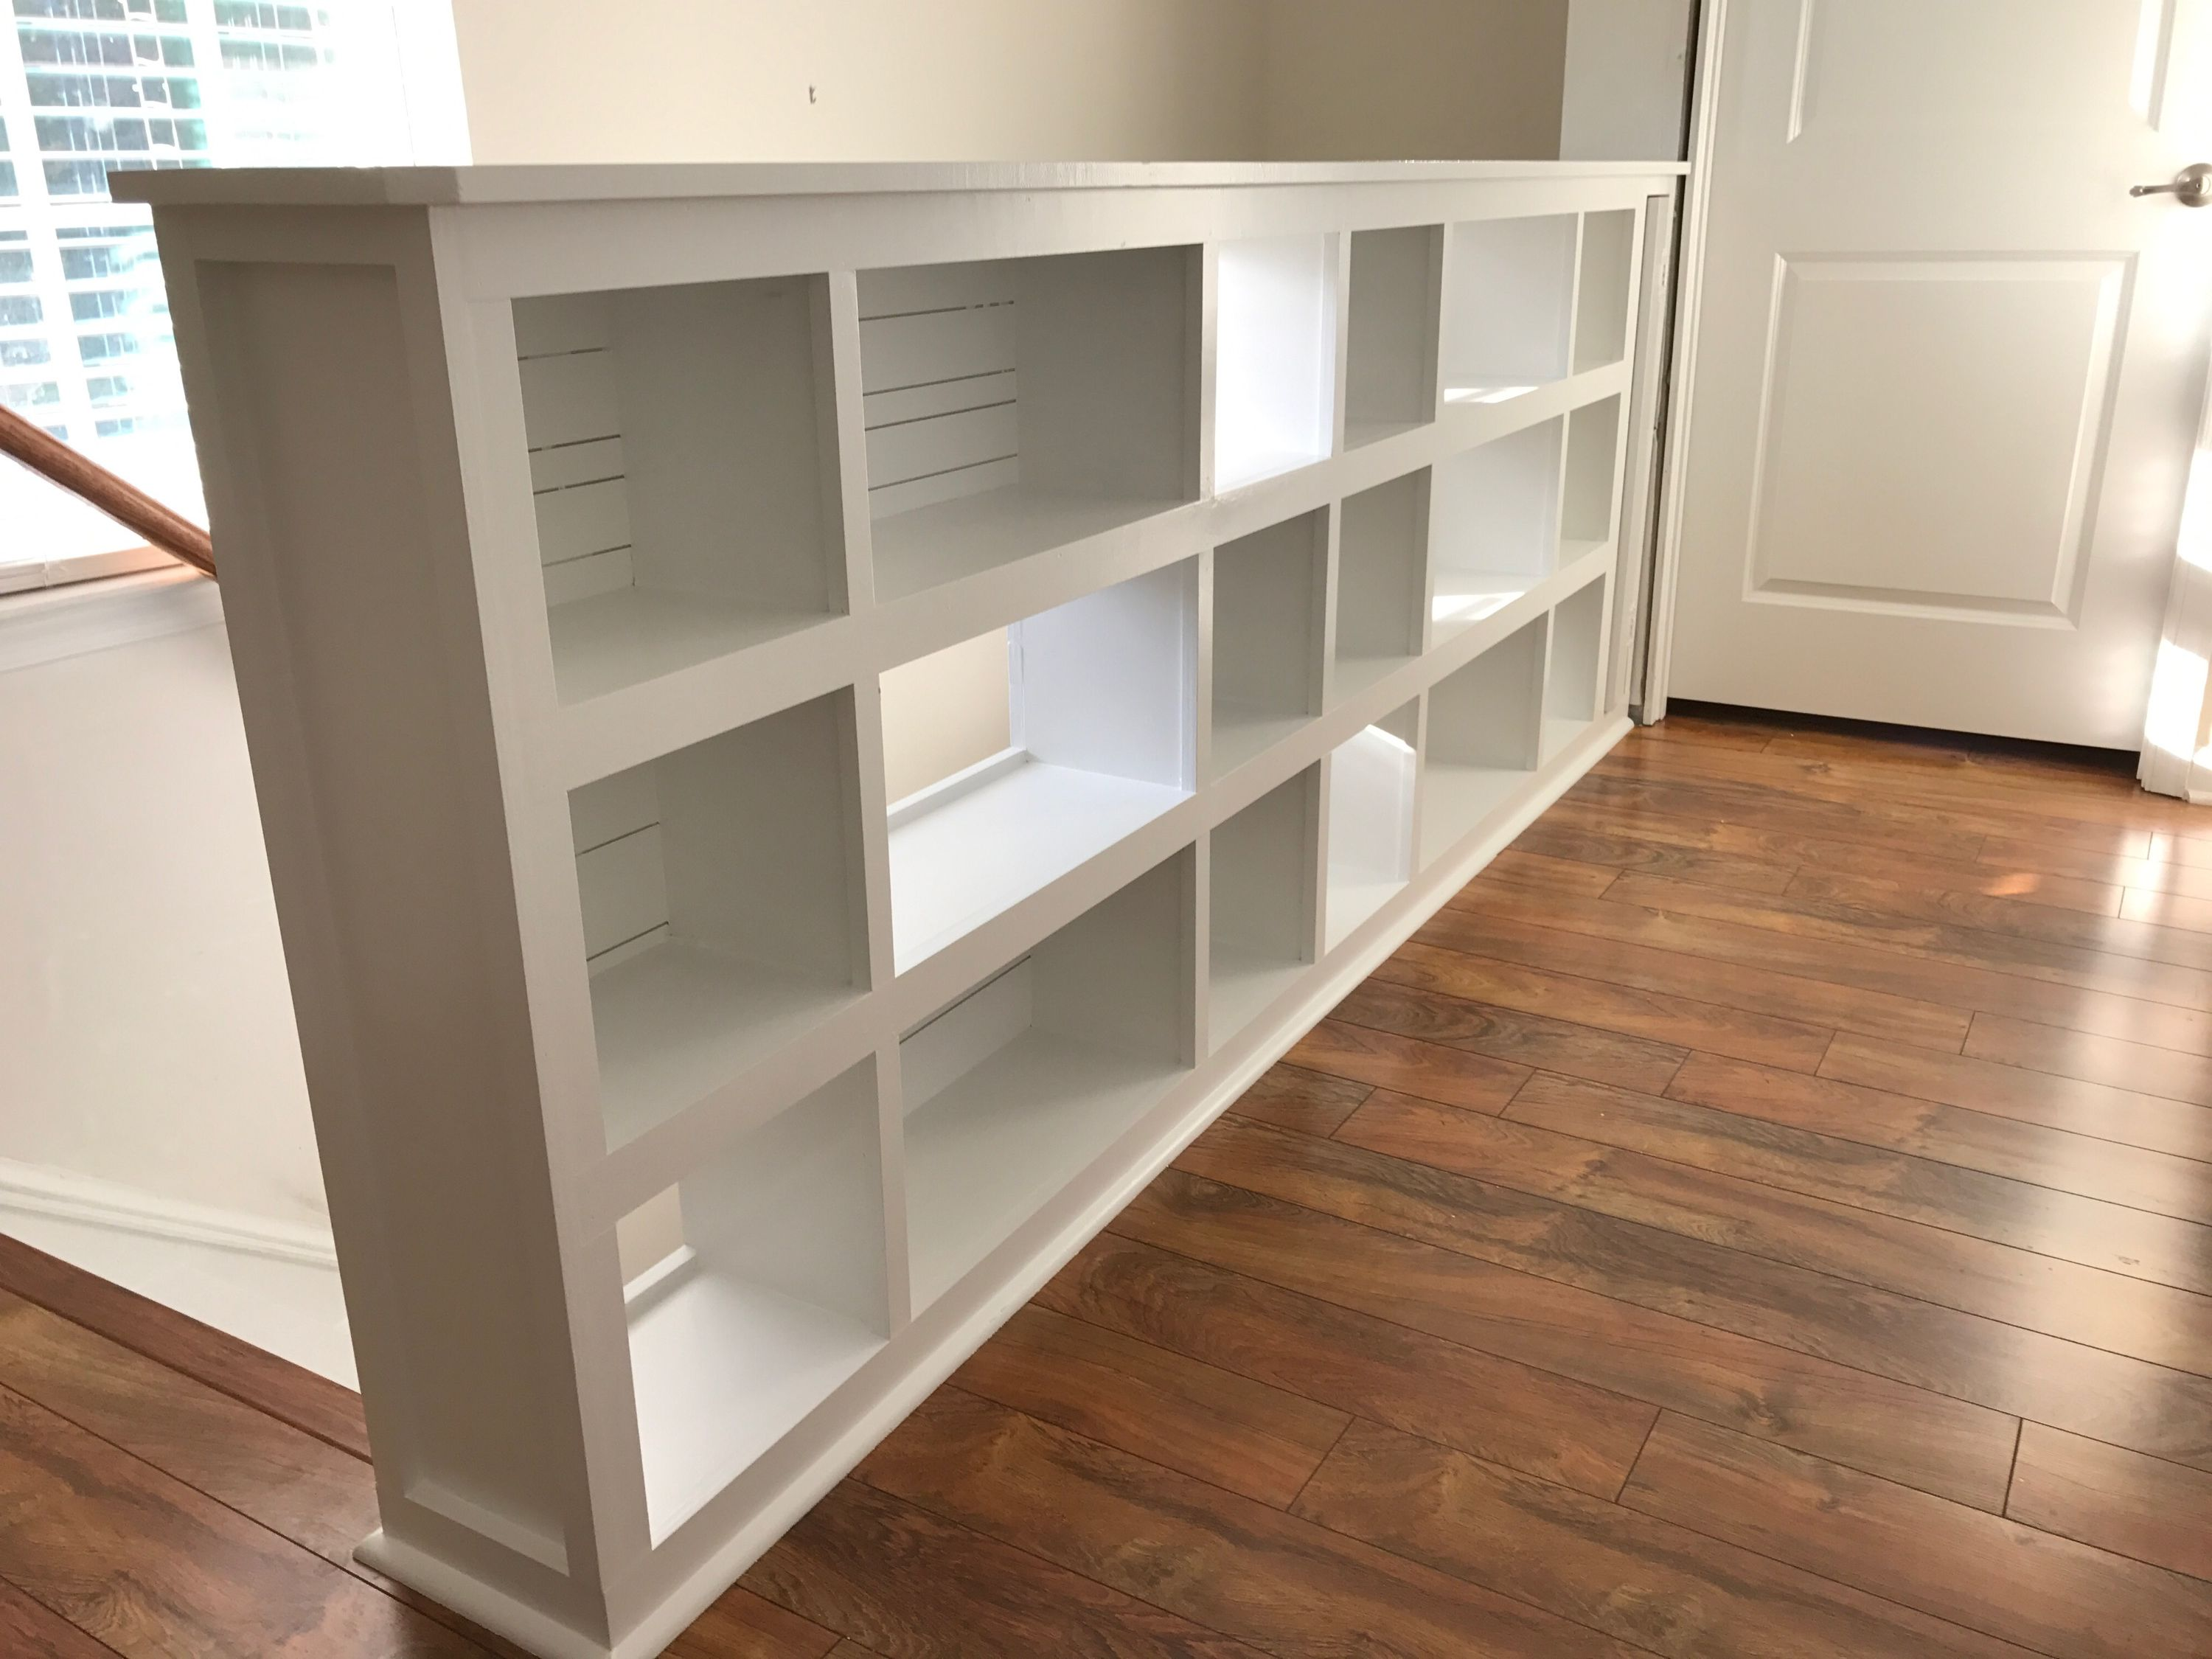 Bookcase Stair Railing Our New Built In Book Cases New Home In 2019 Bookcase